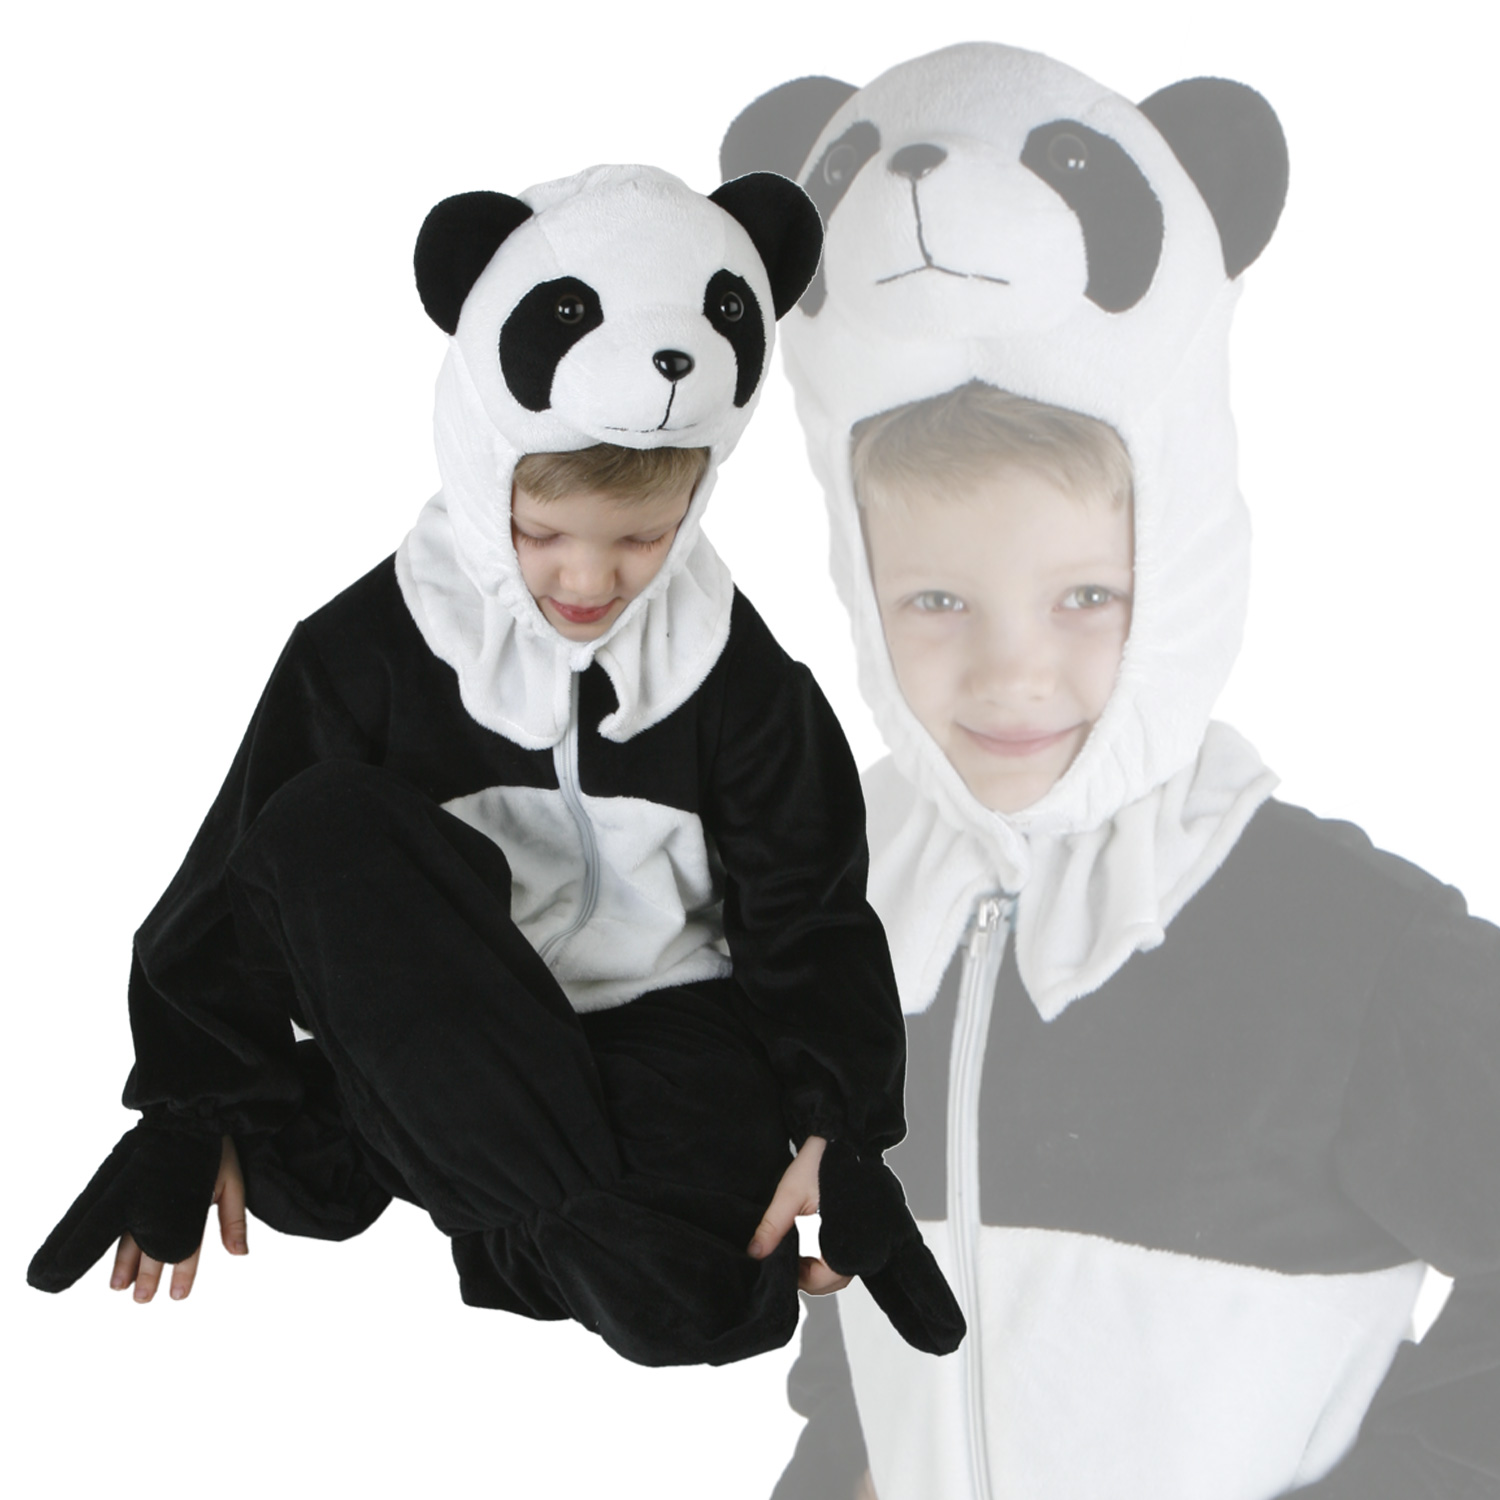 fasching kost m kinderkost m hund katze kuh panda frosch fuchs hase 98 126 ebay. Black Bedroom Furniture Sets. Home Design Ideas